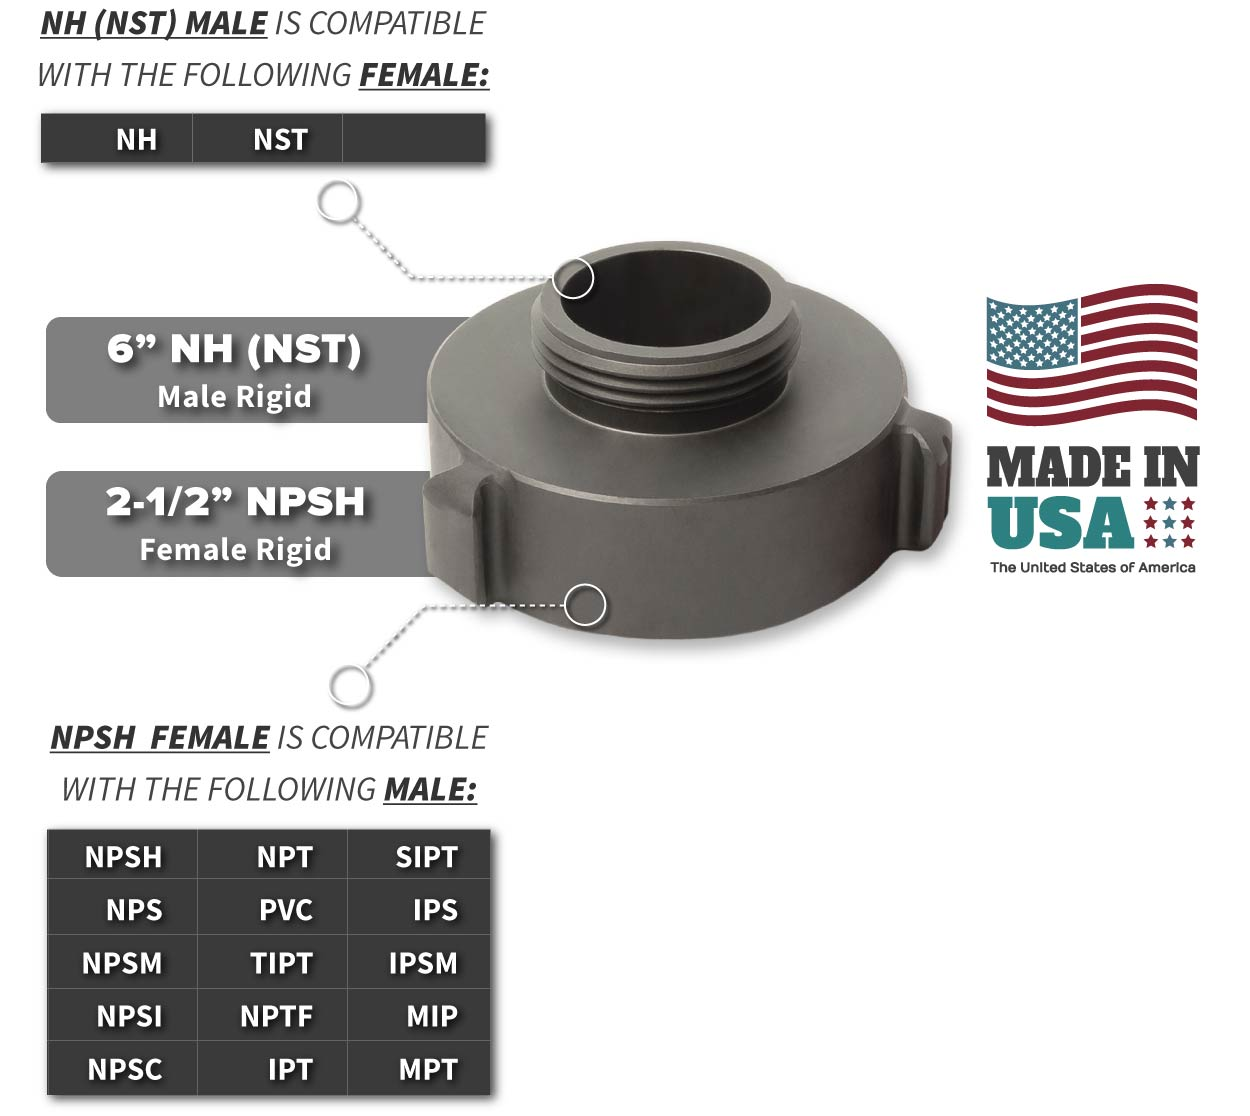 2.5 Inch NPSH Female x 6 Inch NH-NST Male Compatibility Thread Chart